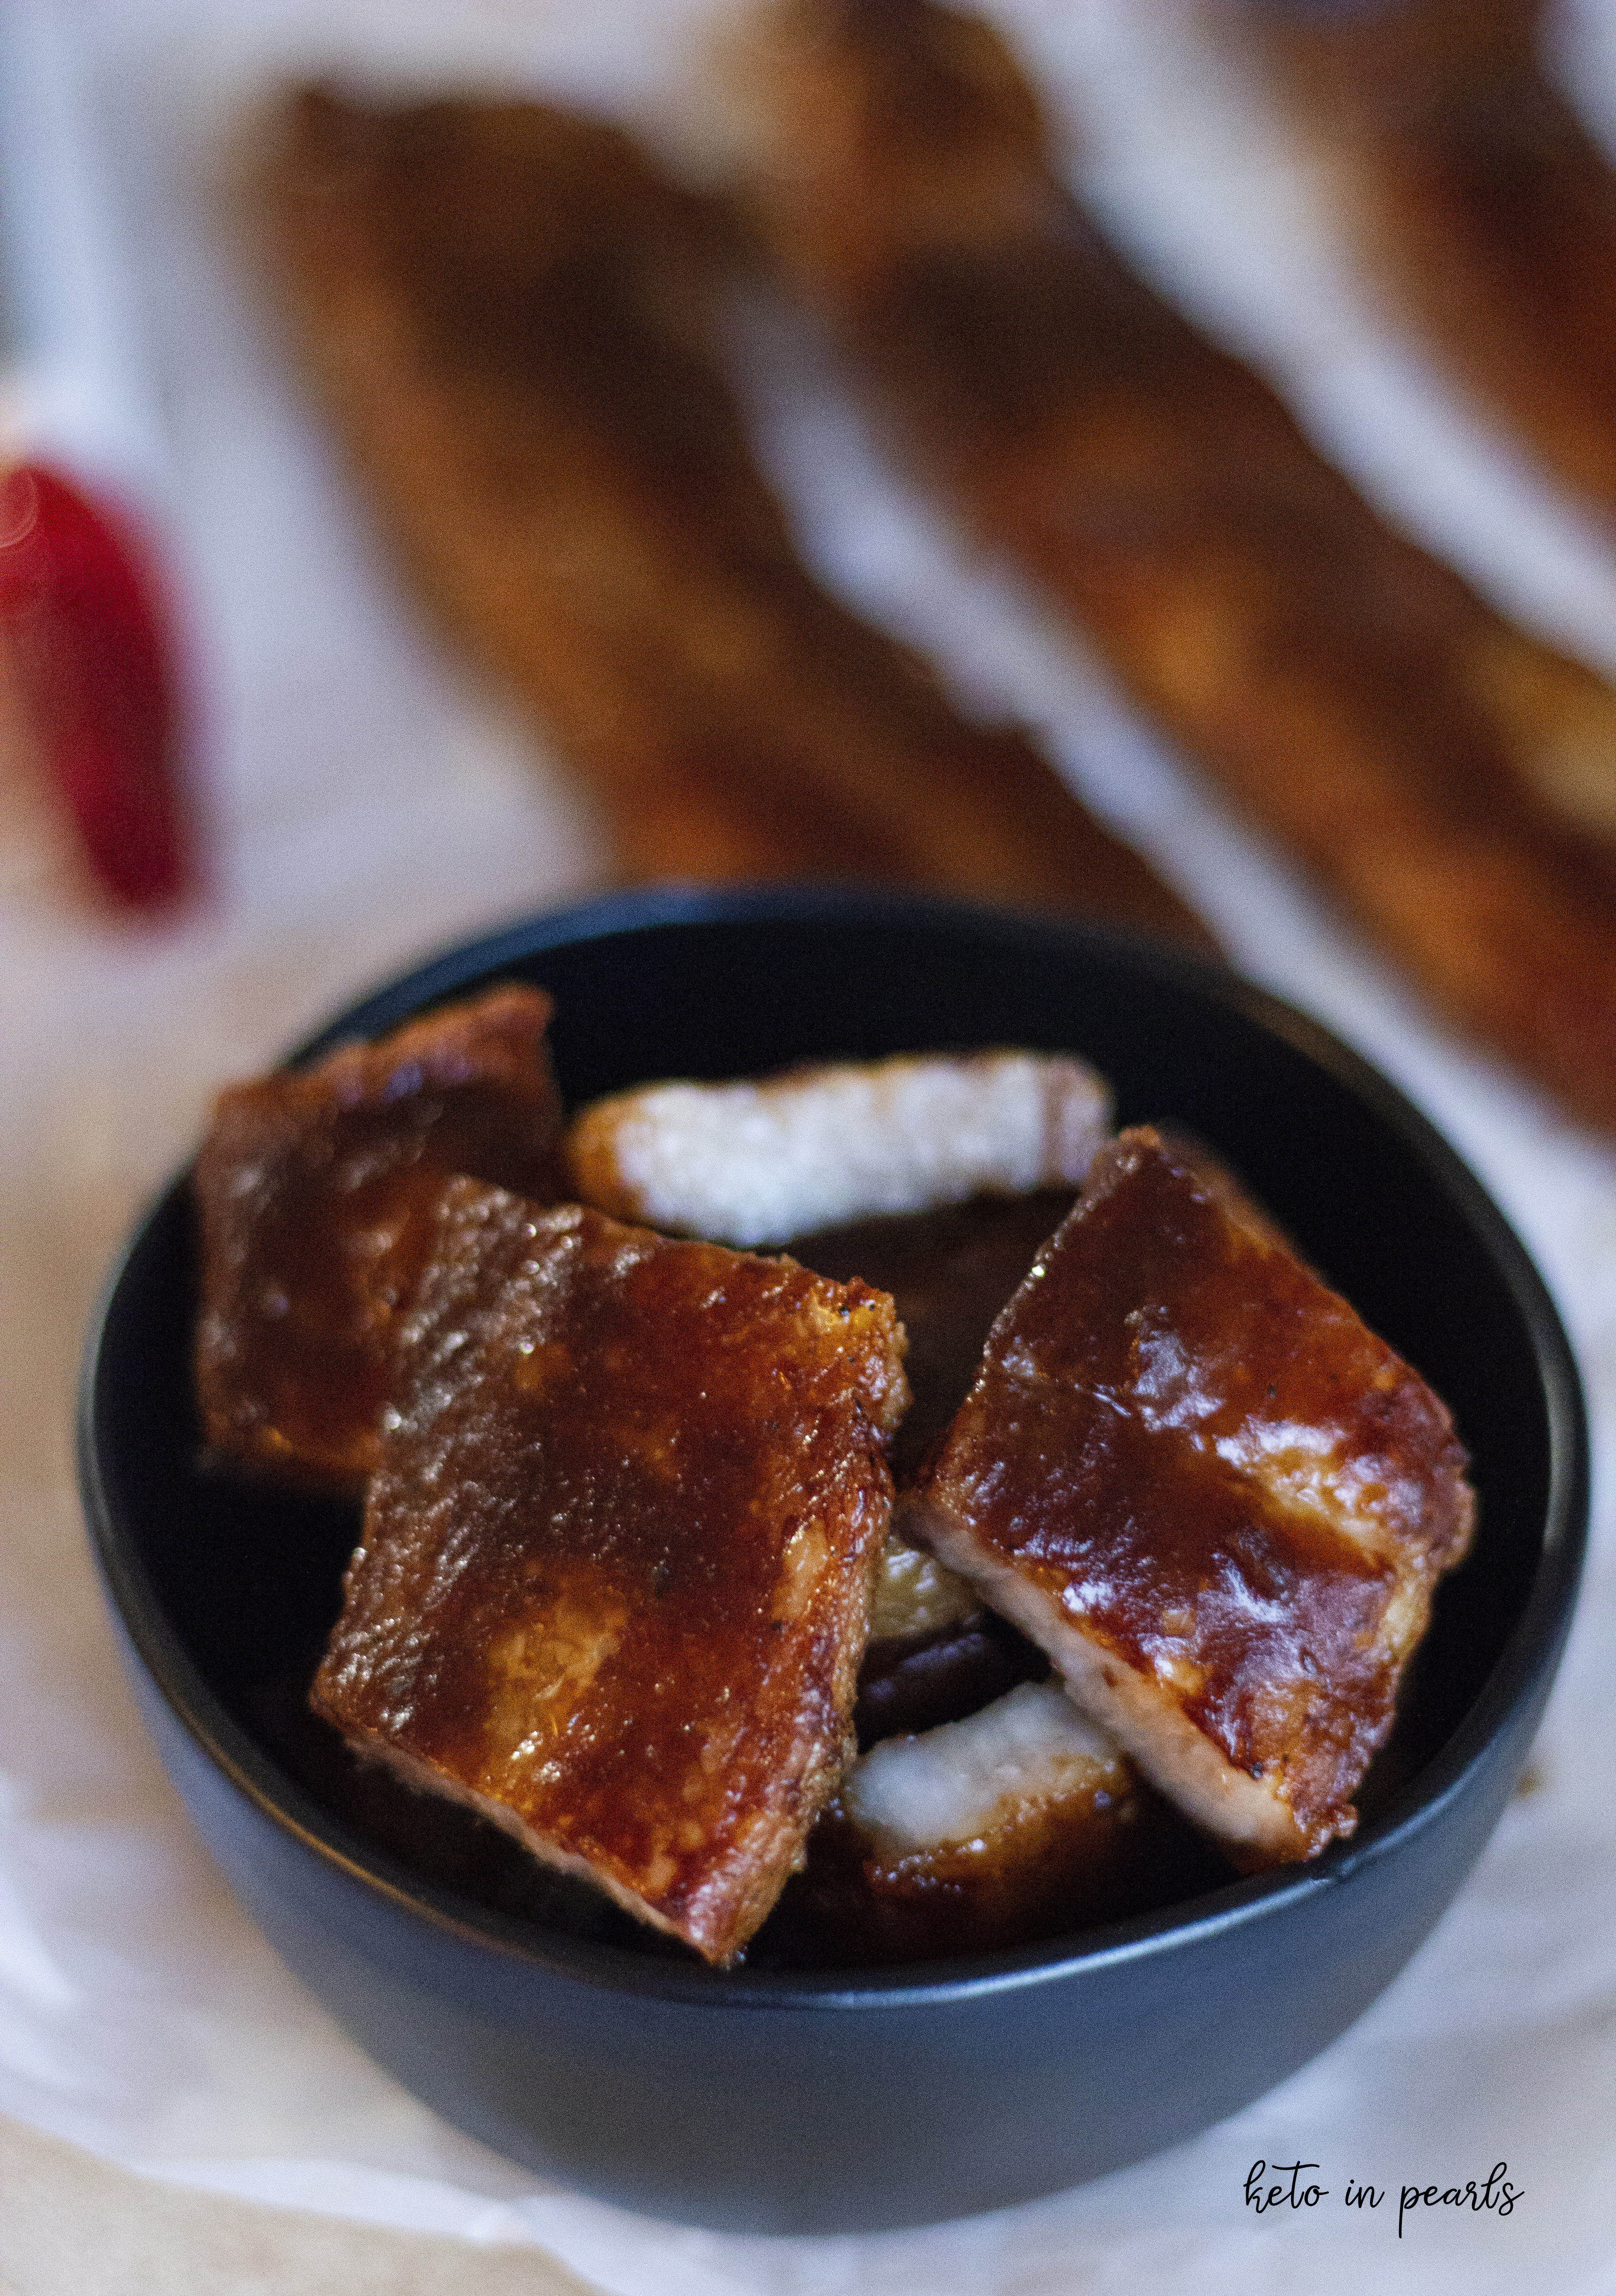 Thick pieces of BBQ pork belly are baked until crispy and slathered with a smokey hot BBQ sauce. Only 1 carb per bite!